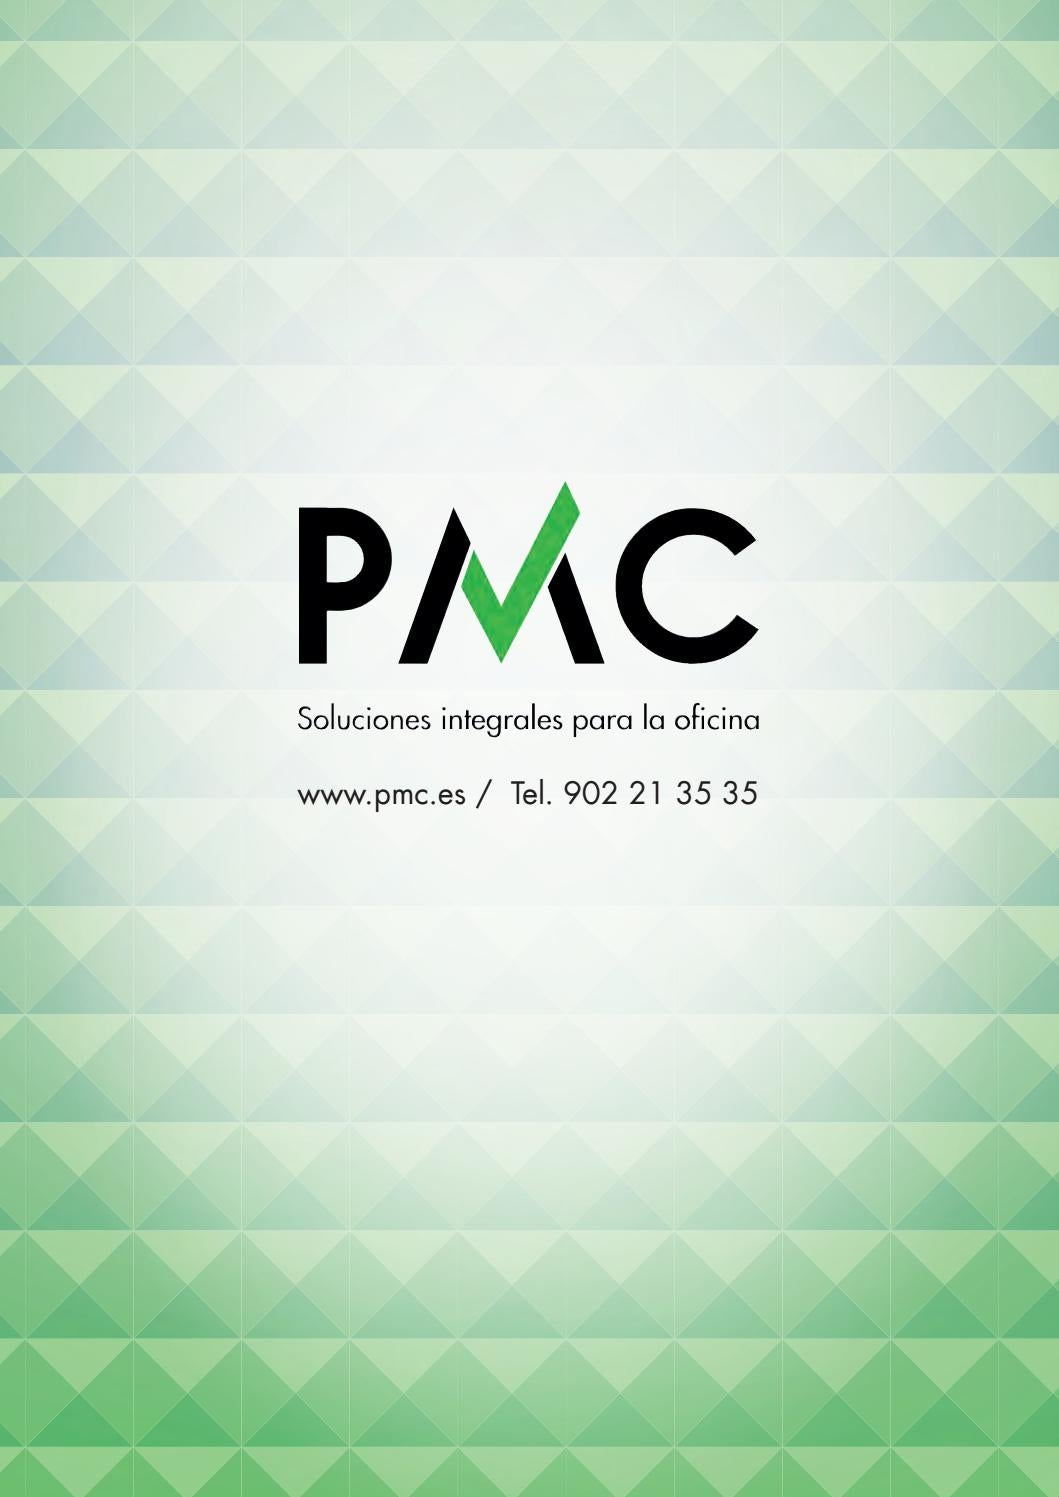 Catalogo General 2017 18 Pmc Www Pmc Es By Ignasi Cruells Issuu